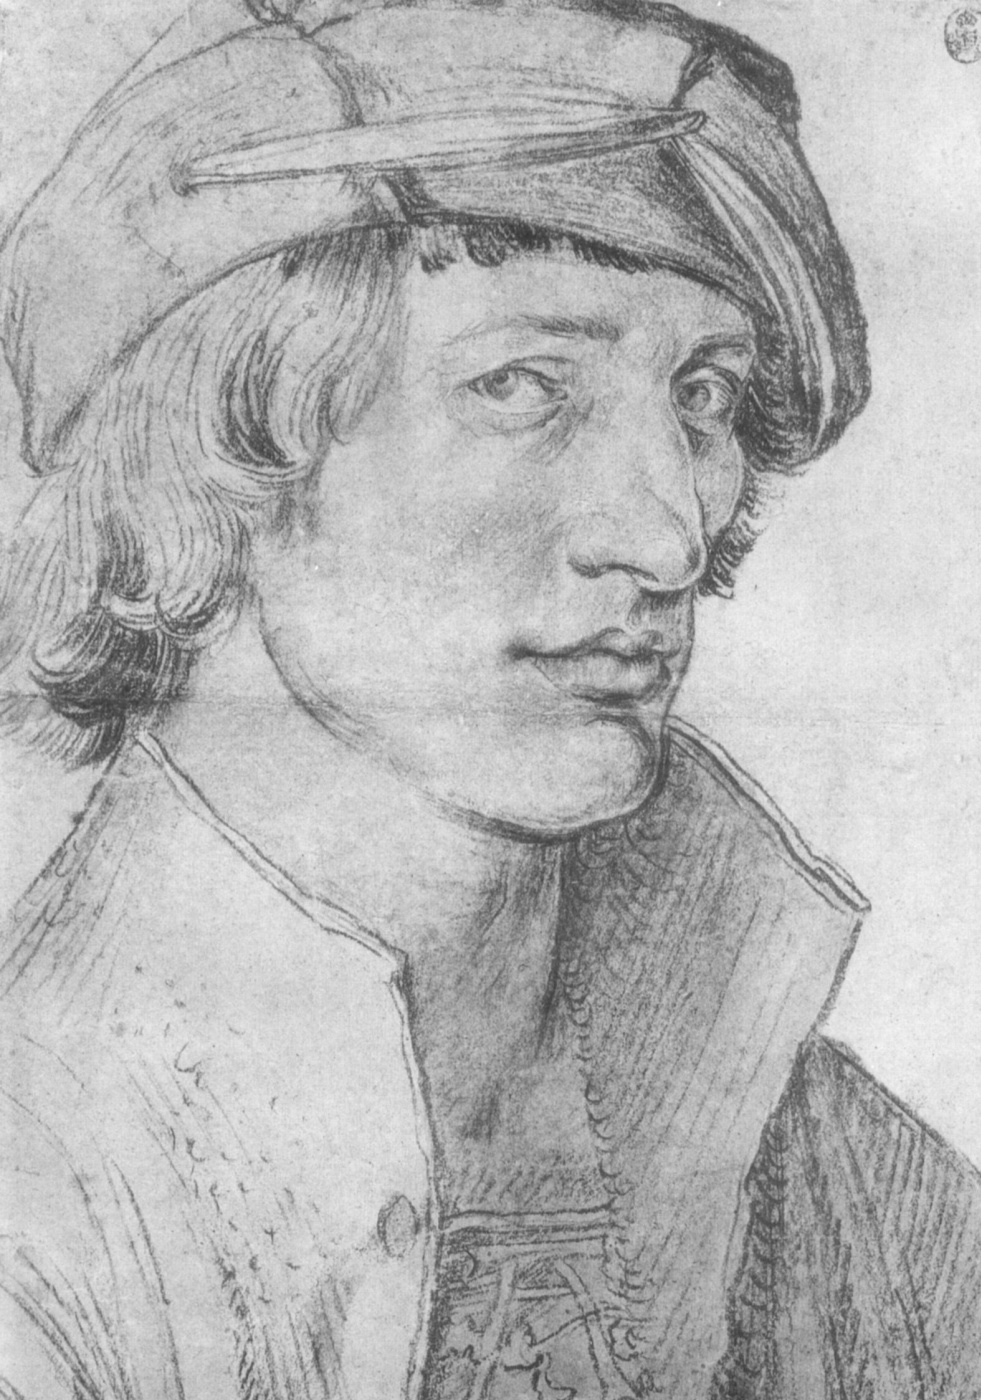 Albrecht Dürer. Portrait of a young man